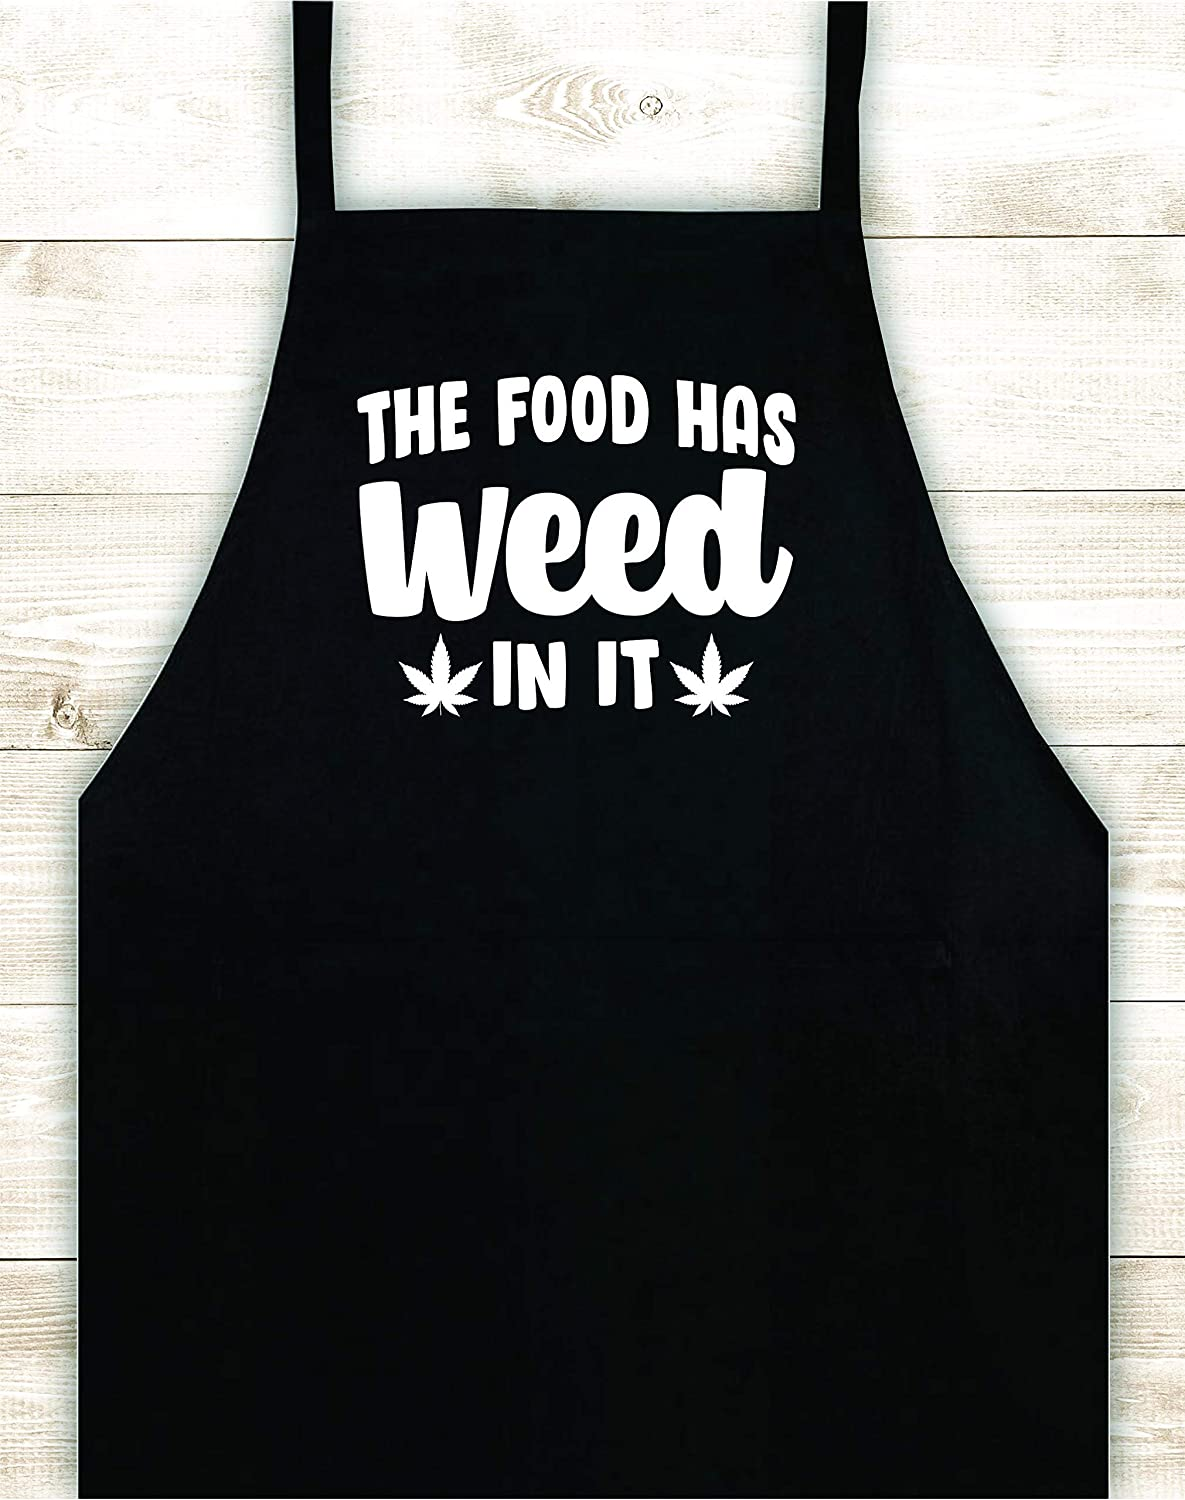 The Food Has Weed In It Apron Custom Design Heat Press Vinyl Kitchen Bbq Cook Grill Barbeque Chef Funny Gift Men Party Bake Girls Gift Birthday Funny Dad Family Stoner Marijuana Edibles Cannabis High